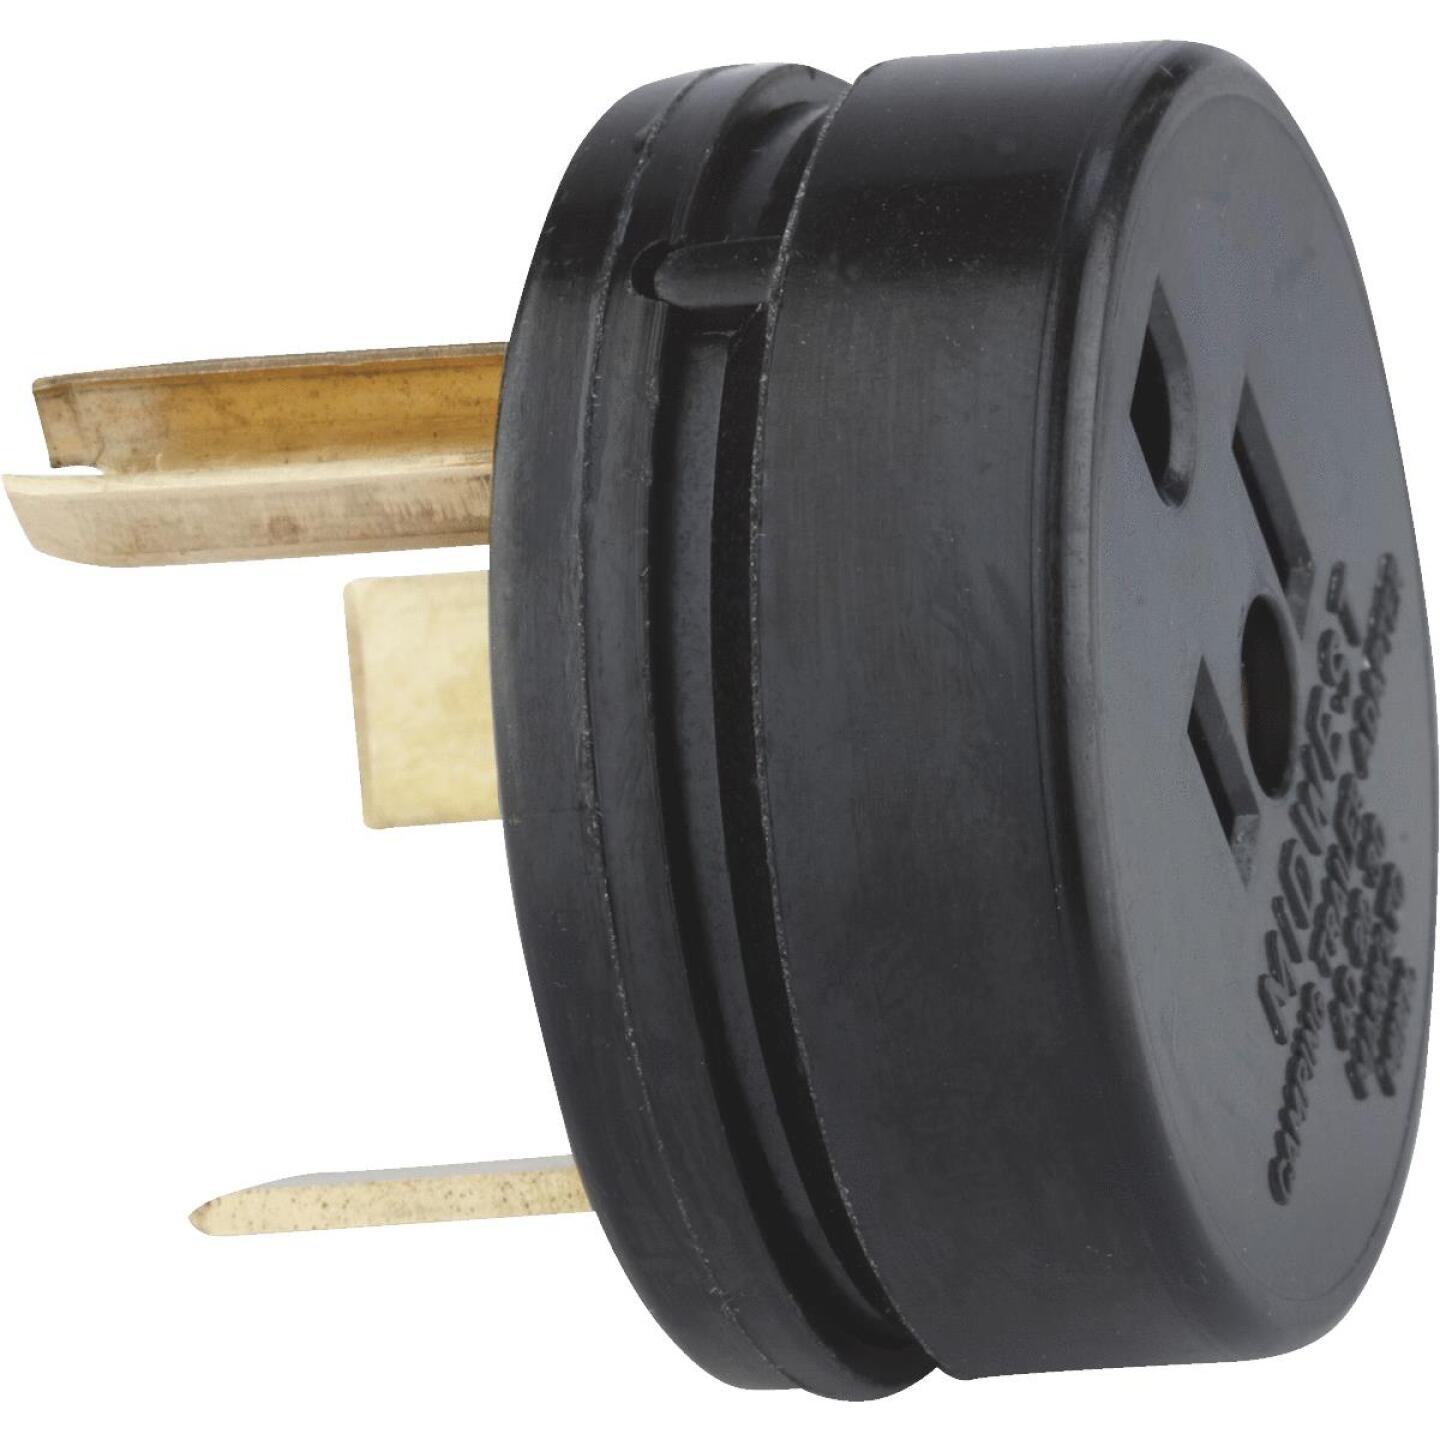 GE 15/20A to 30A RV Plug Adapter Image 1